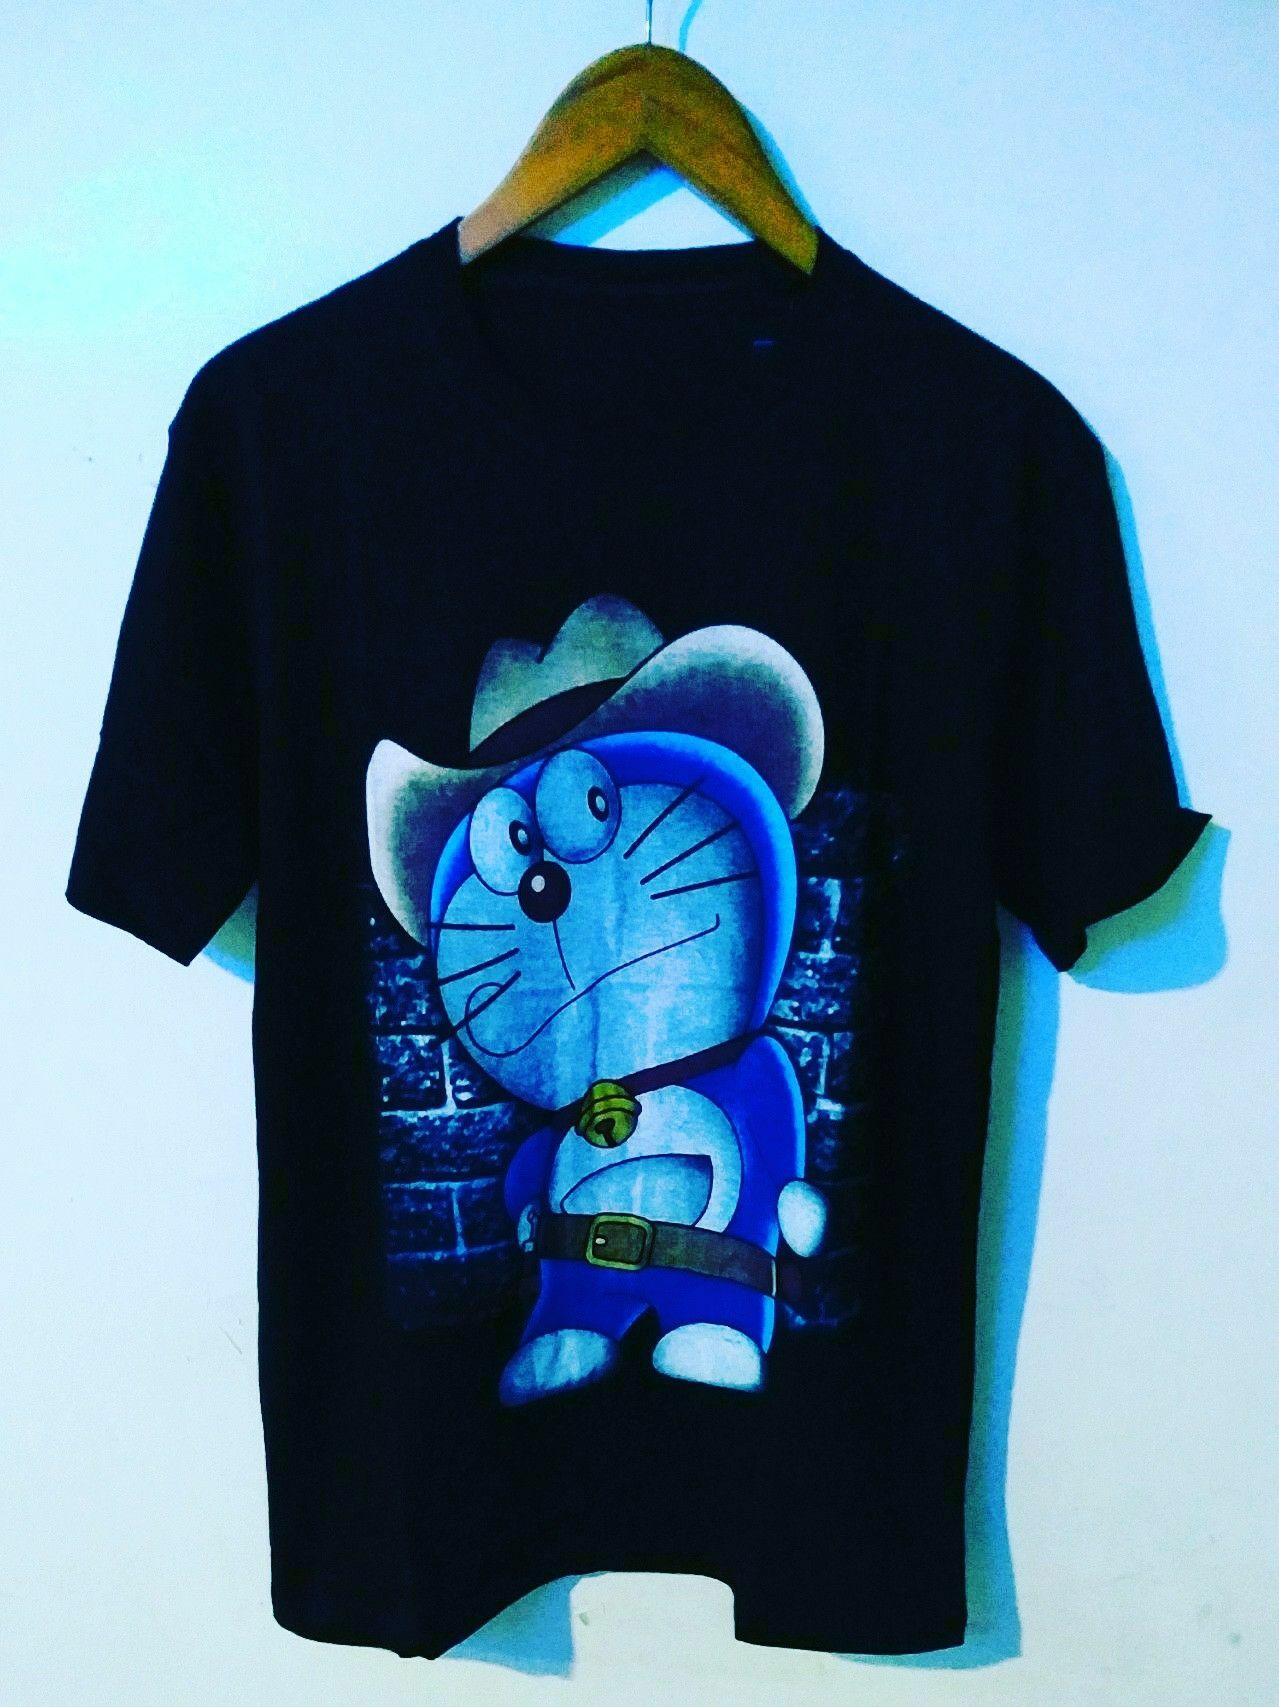 Amazon distro-kaos distro T-shirt fashion 100% soft cotton combed 30s kaos pria kaos fashion baju distro T-shirt gambar DORAEMON kartun marvel sablon plastisol atasan pria wanita katun simple keren cowok cewek pakaian distro